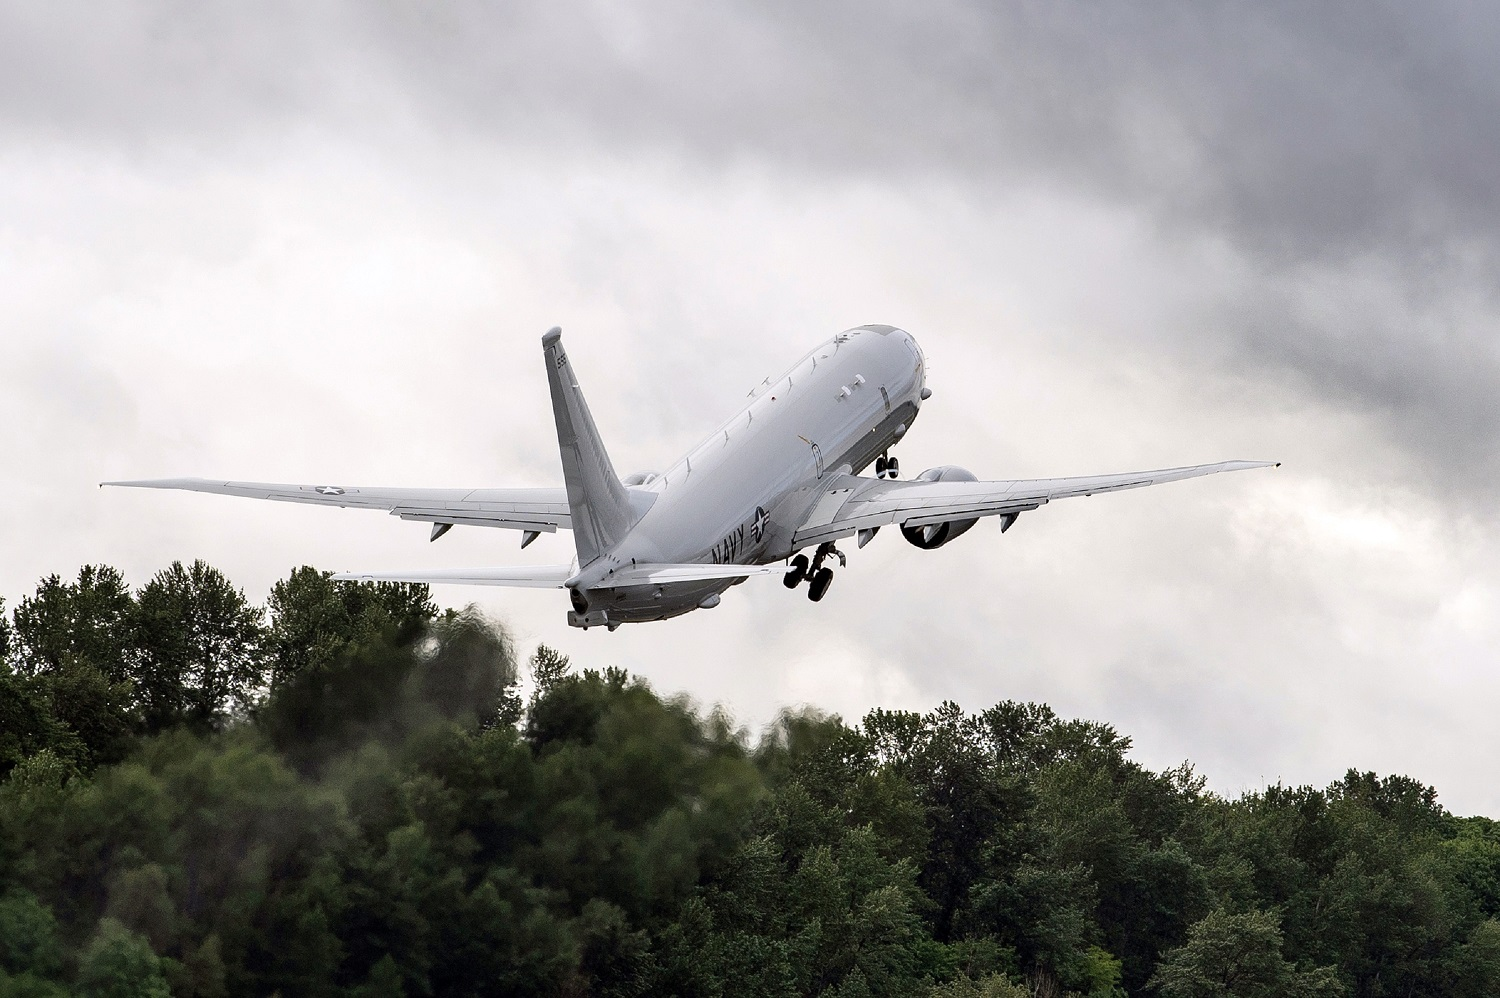 Boeing Delivers 100th P-8A Poseidon Built for the U.S. Navy